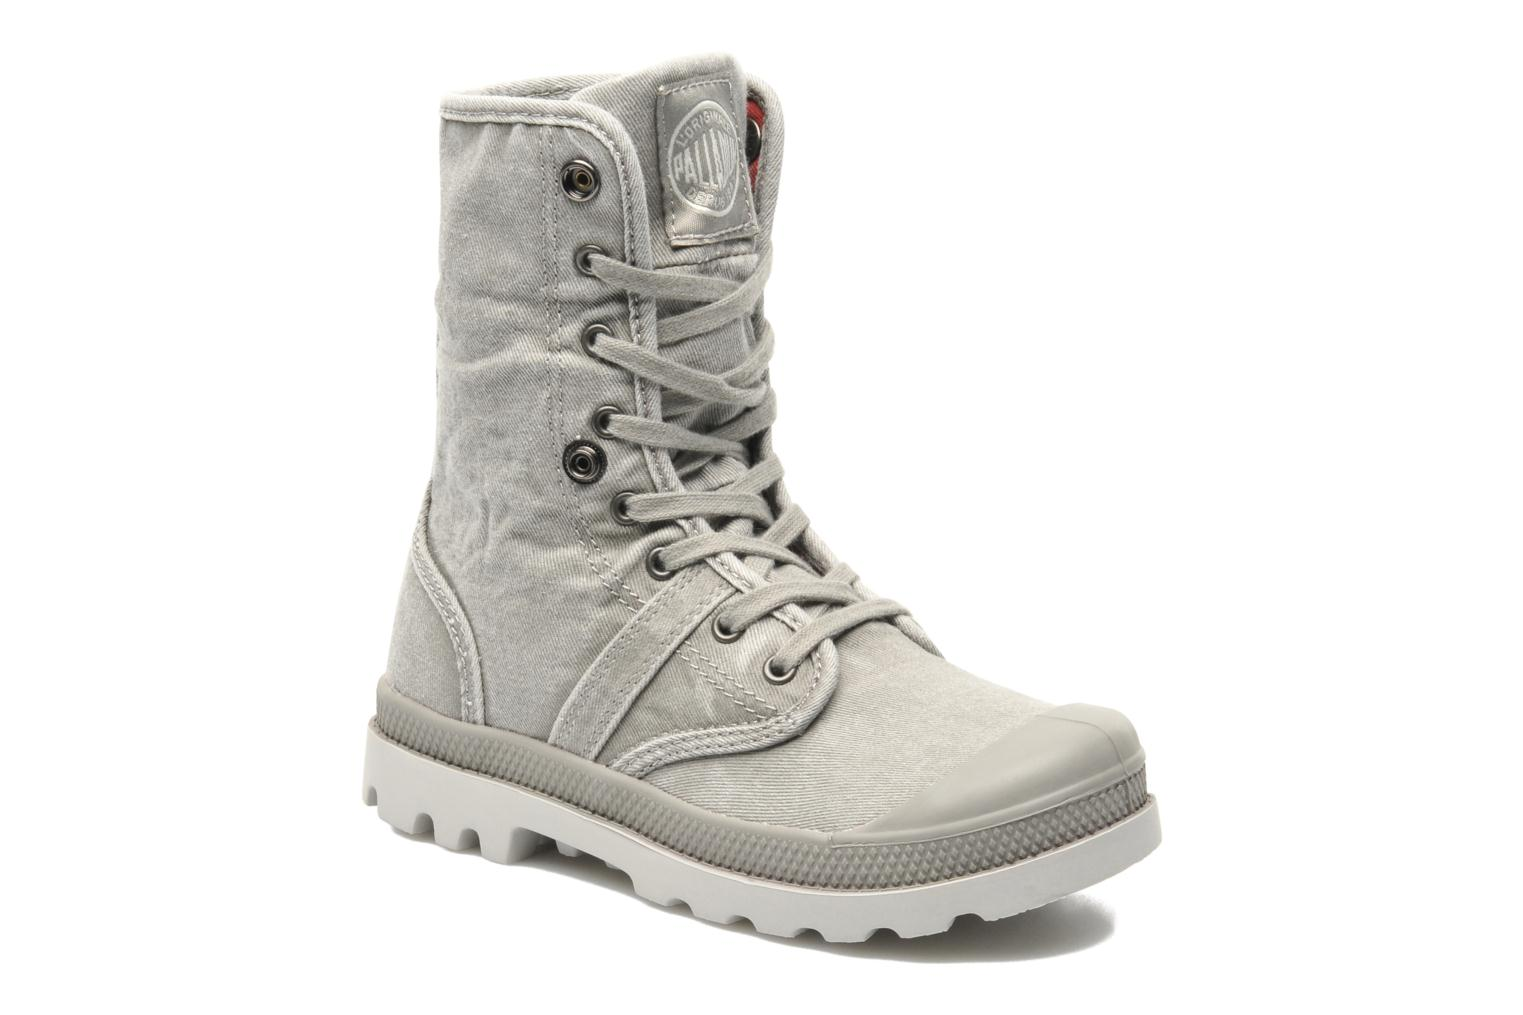 Bottines et boots Palladium Baggy Kid Flag Gris vue 3/4